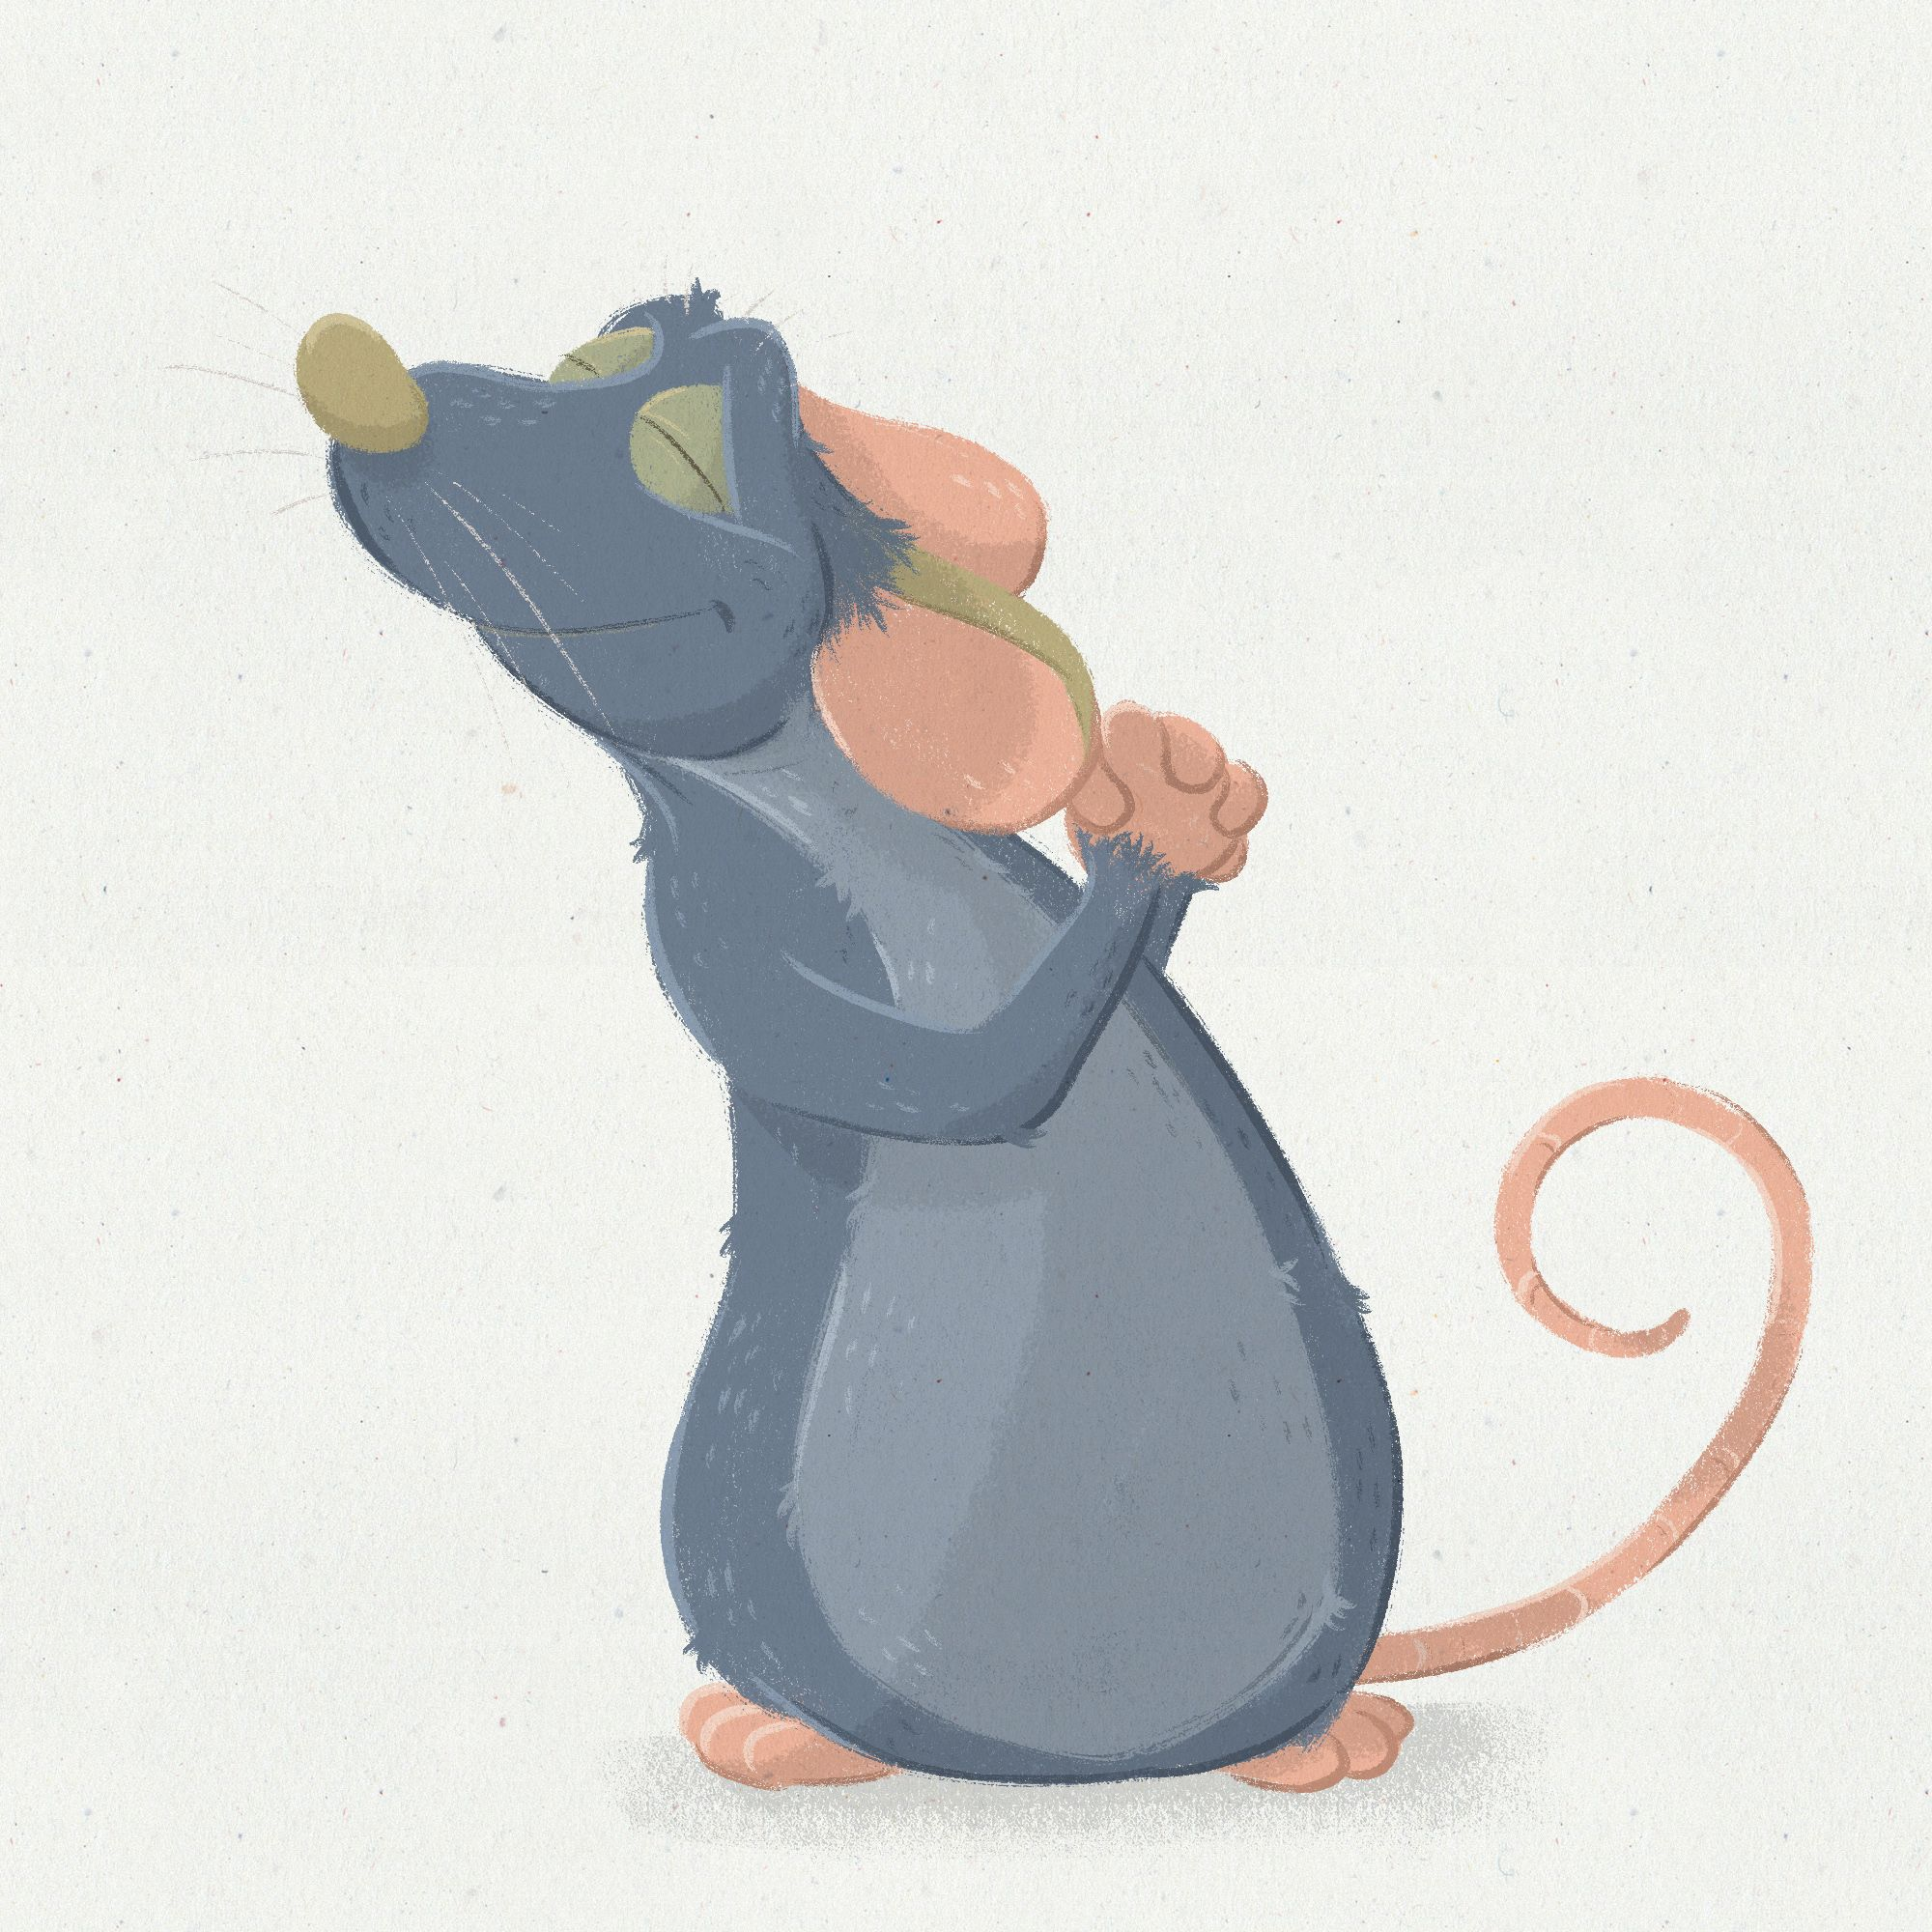 From The Request List Remy From Ratatouille Pixar Disney Illustration Drawing Sketch Rat Foodlover Disney Pixar Illustration